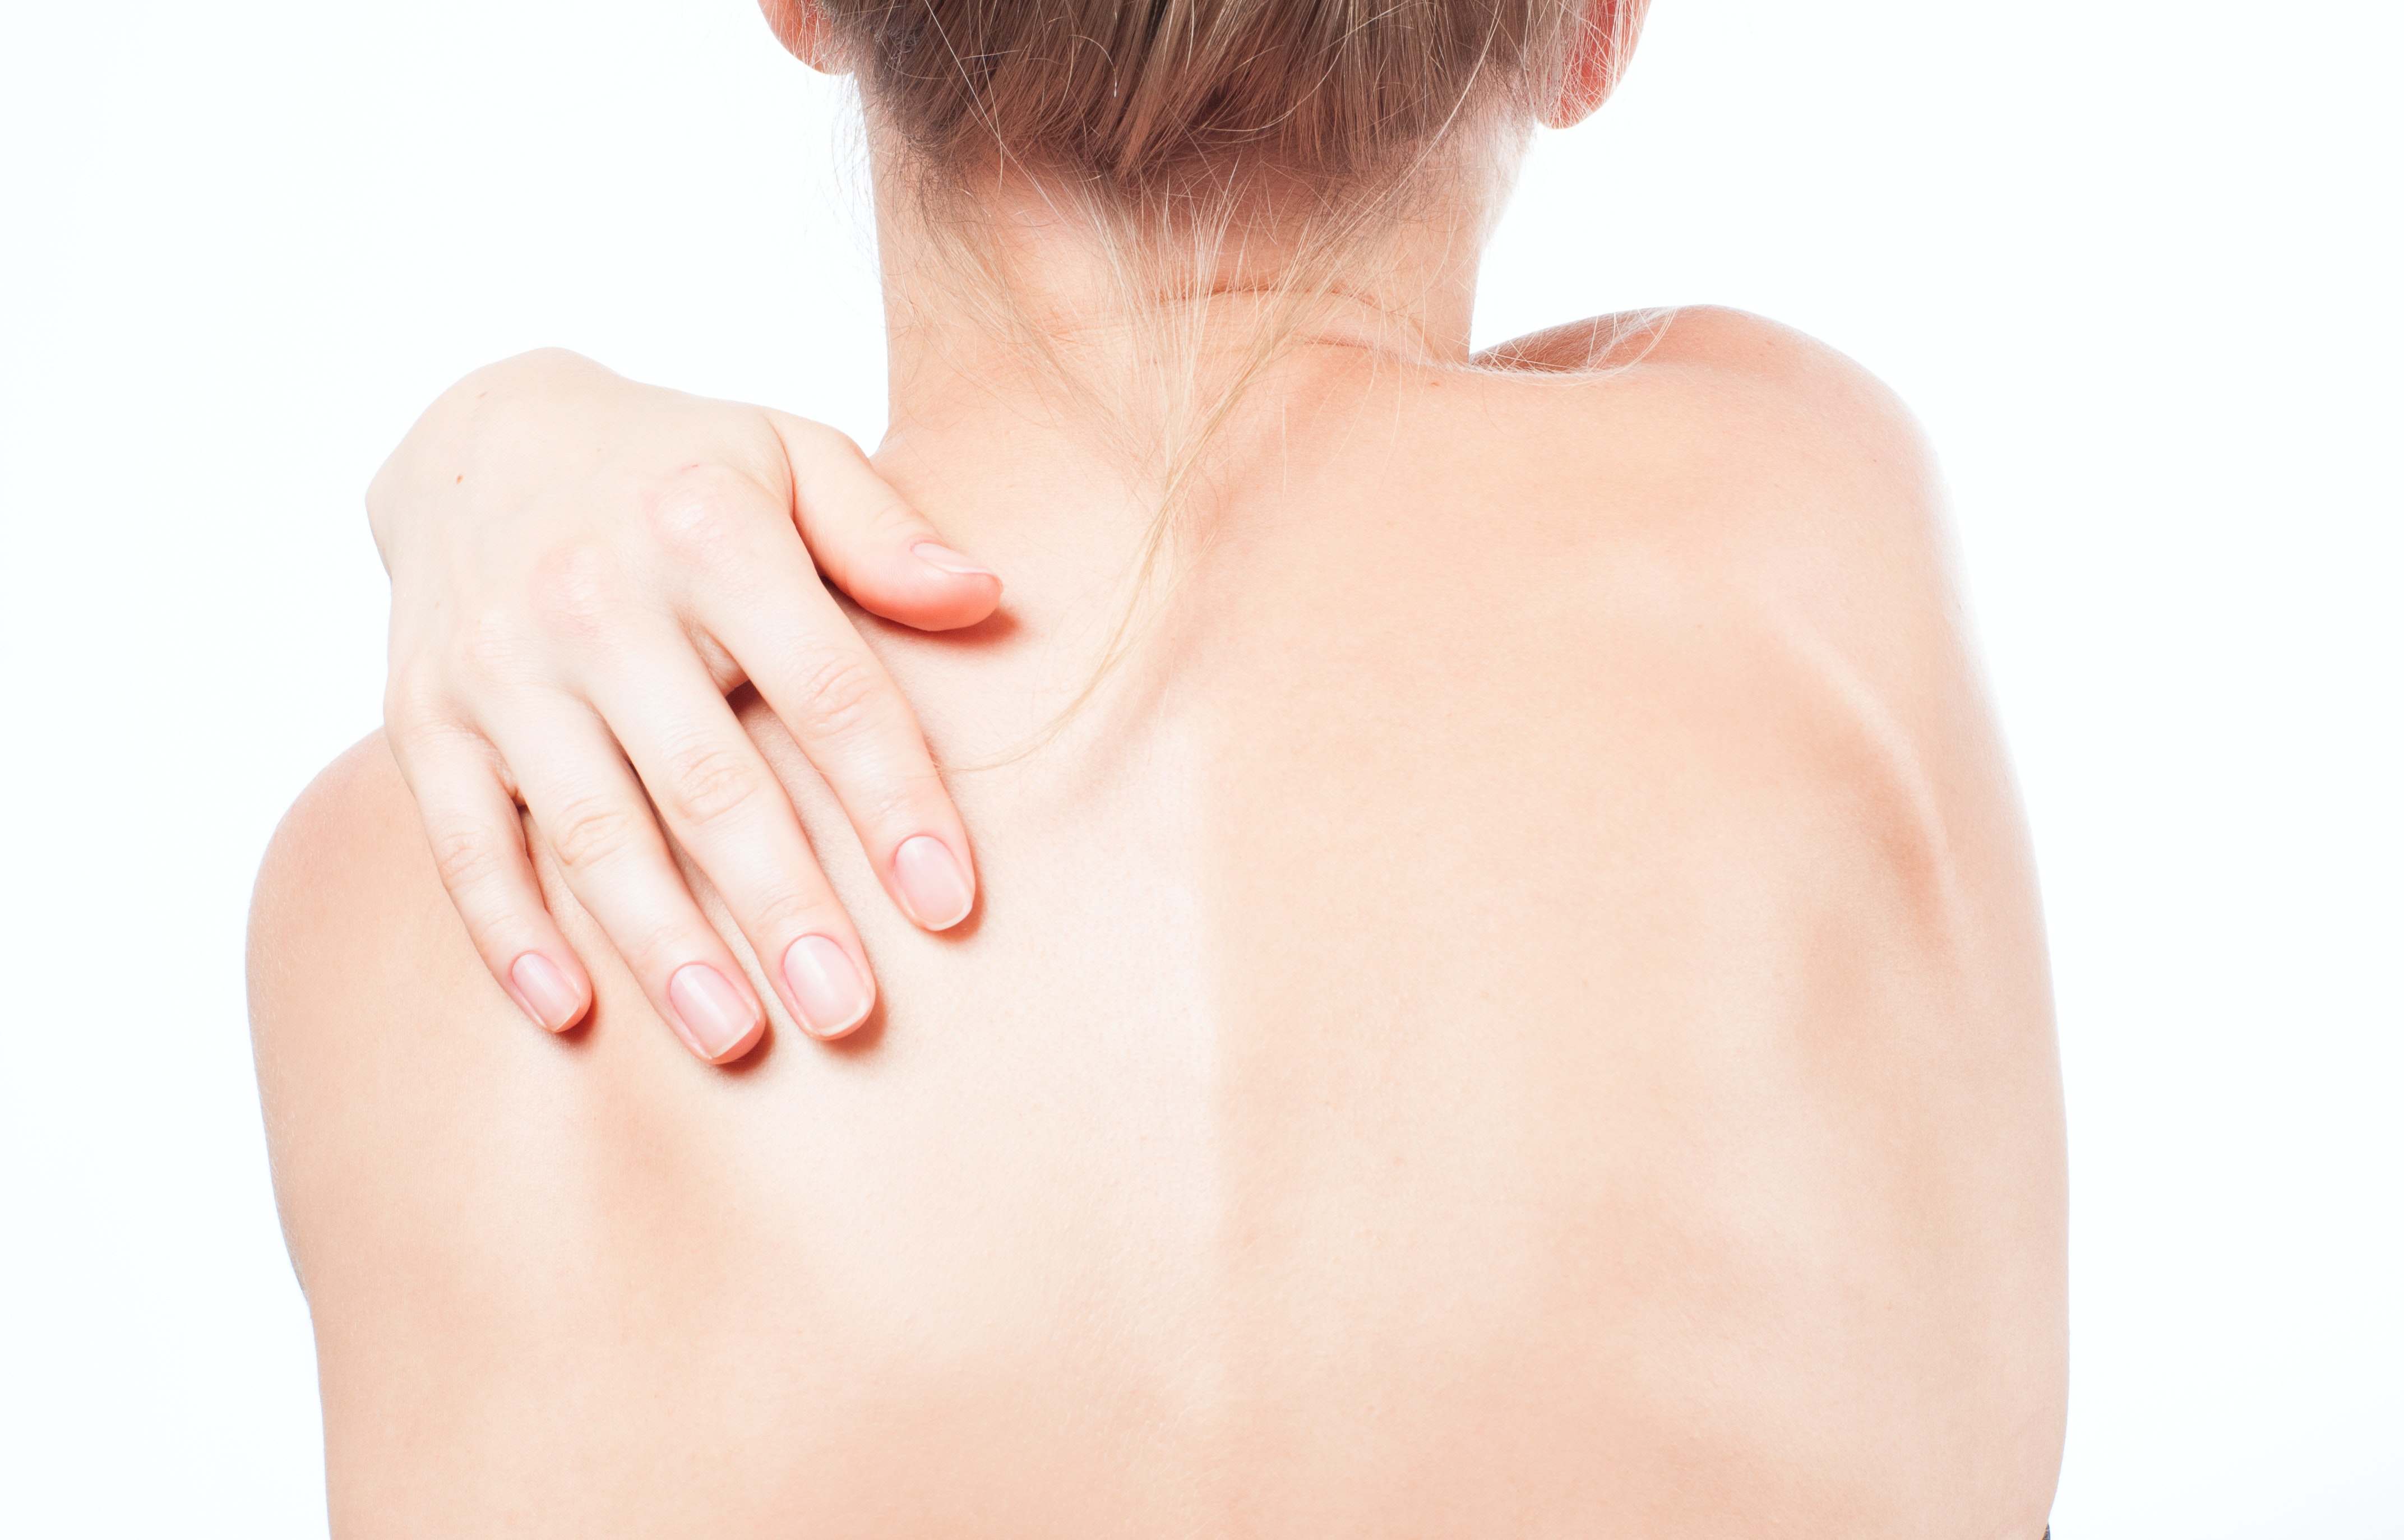 An image depicting a person suffering from pain in one shoulder blade symptoms